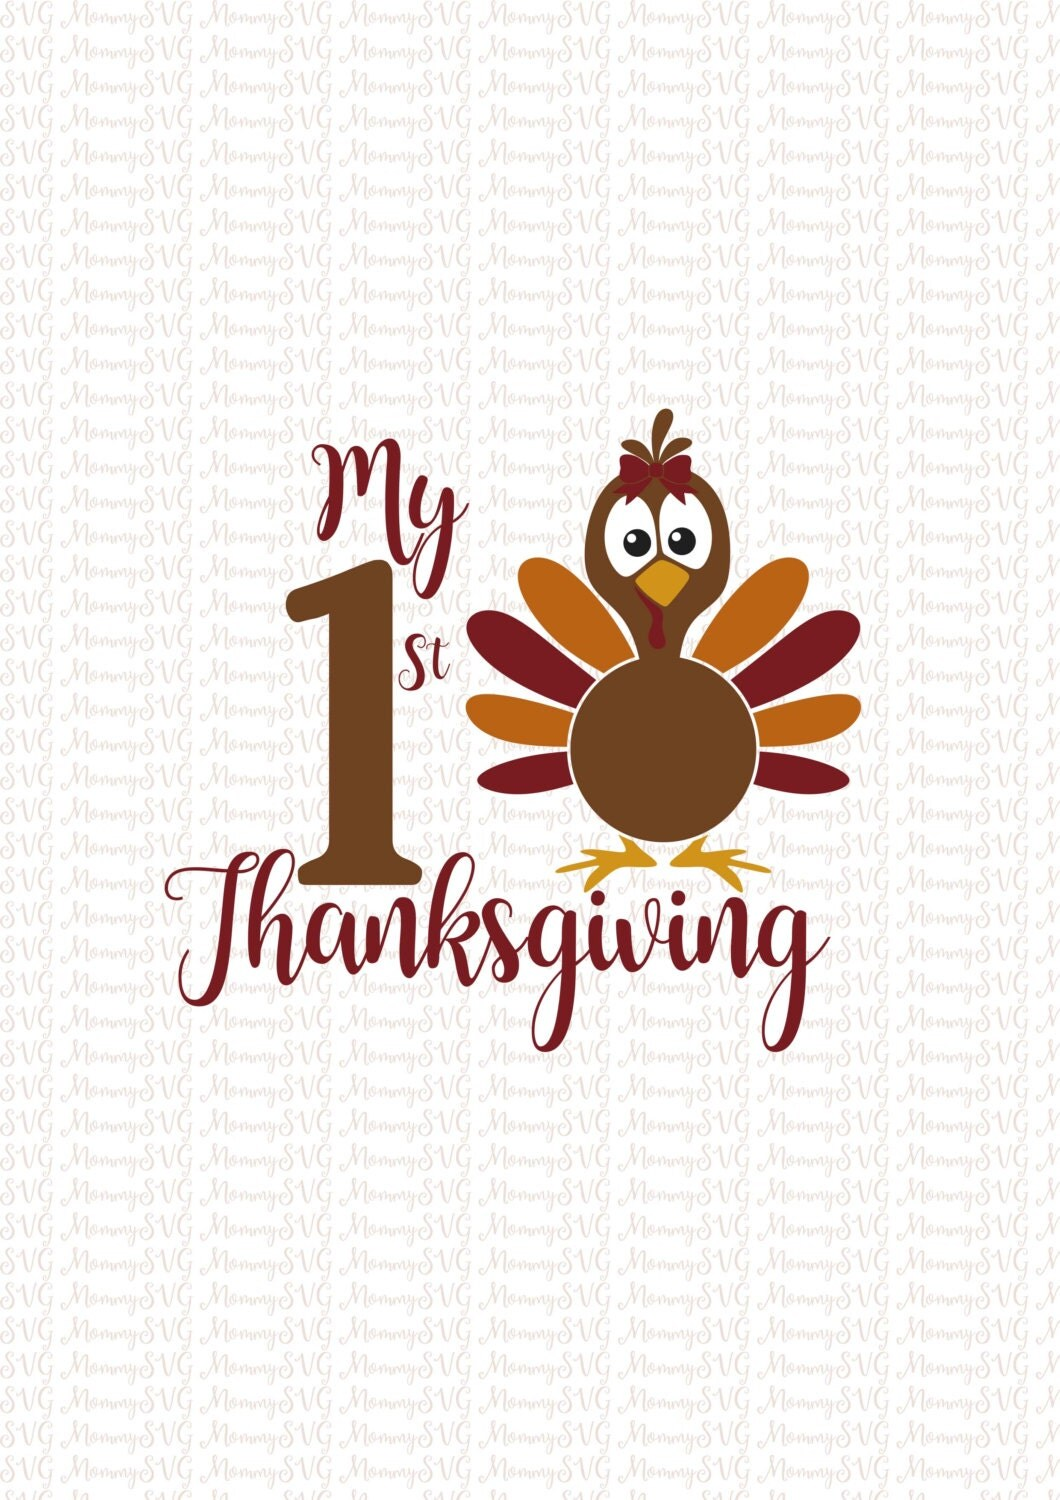 cricut thanksgiving card ideas